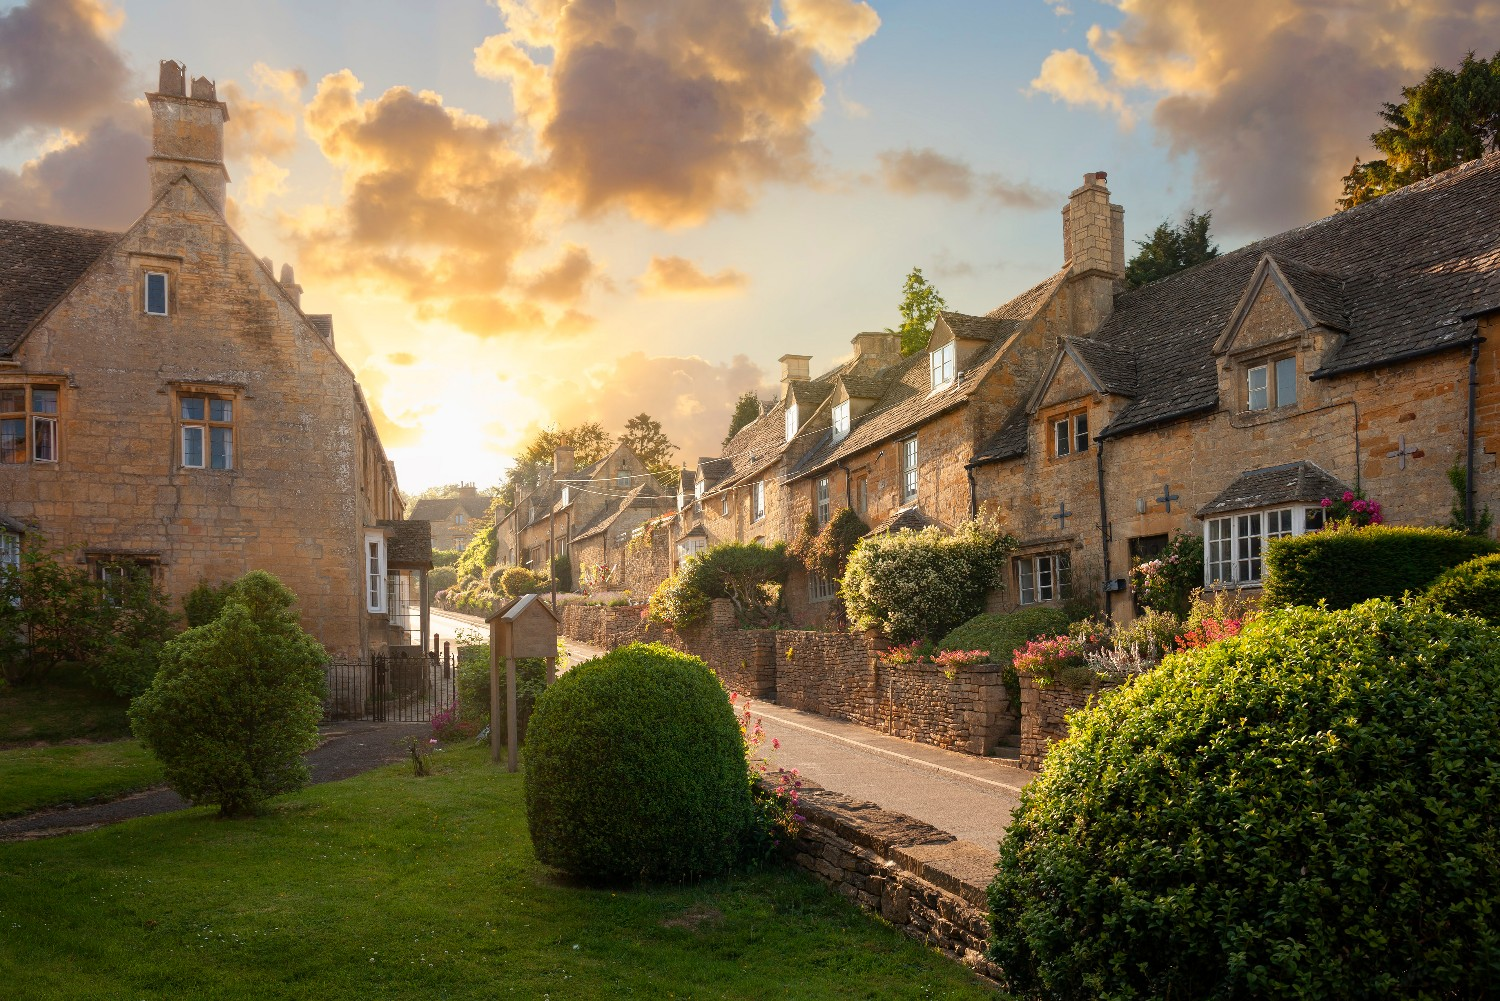 A row of houses in the Cotswolds, England